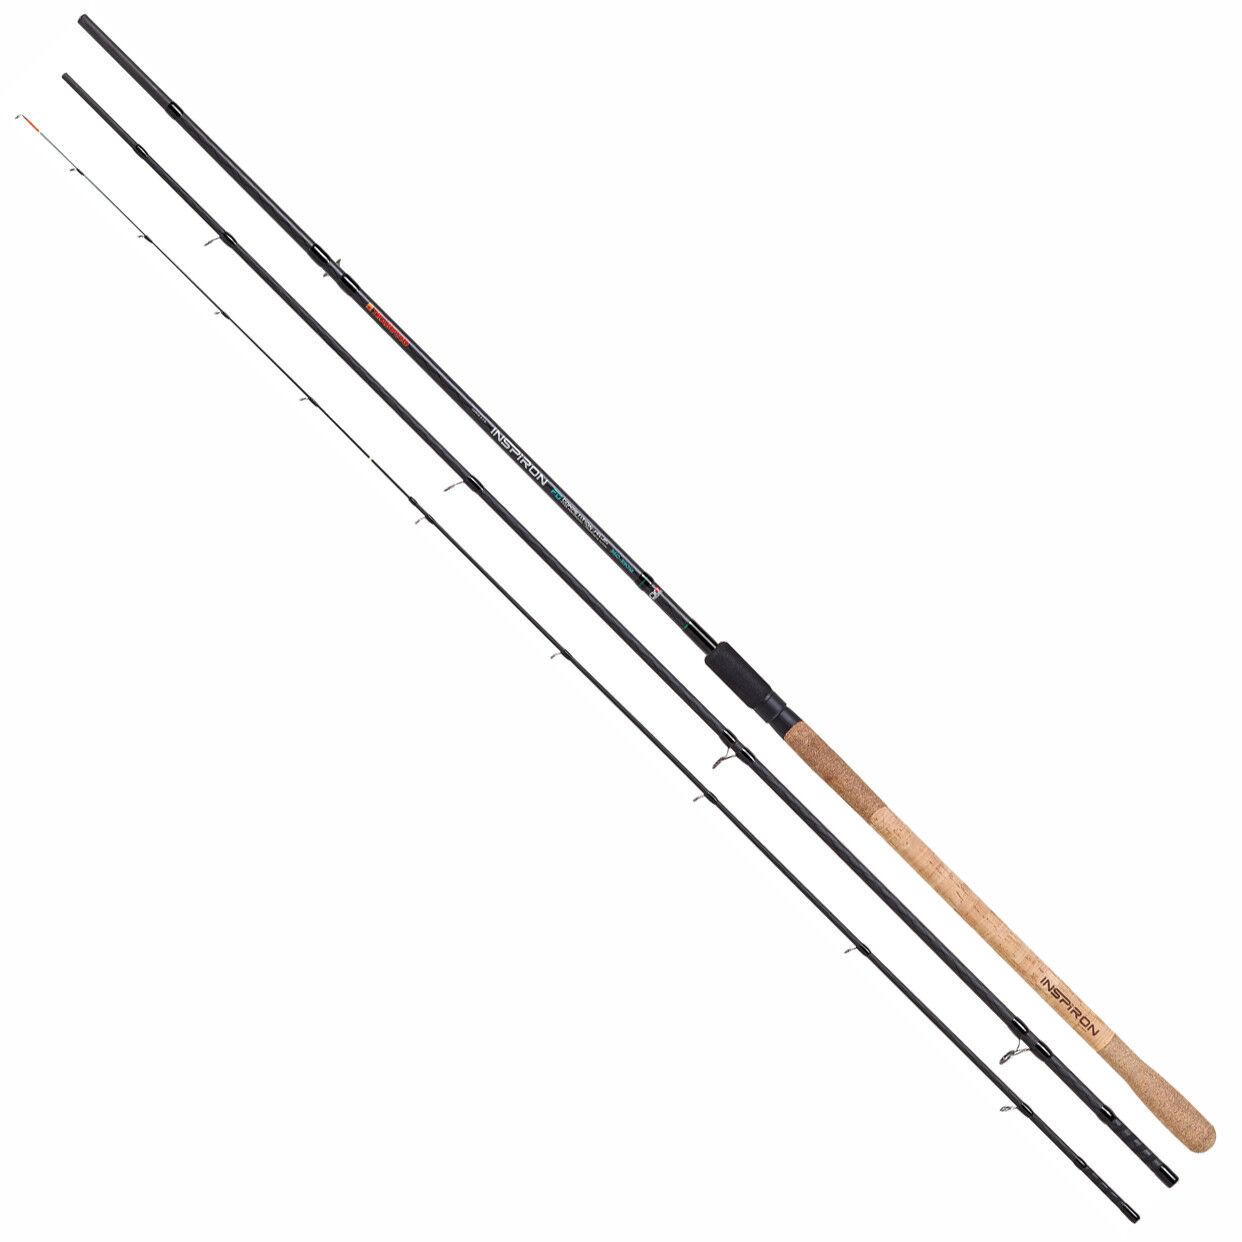 15302395 Canna Pesca Feeder Trabucco Inspiron Competition Multi 3,603,90m CAS